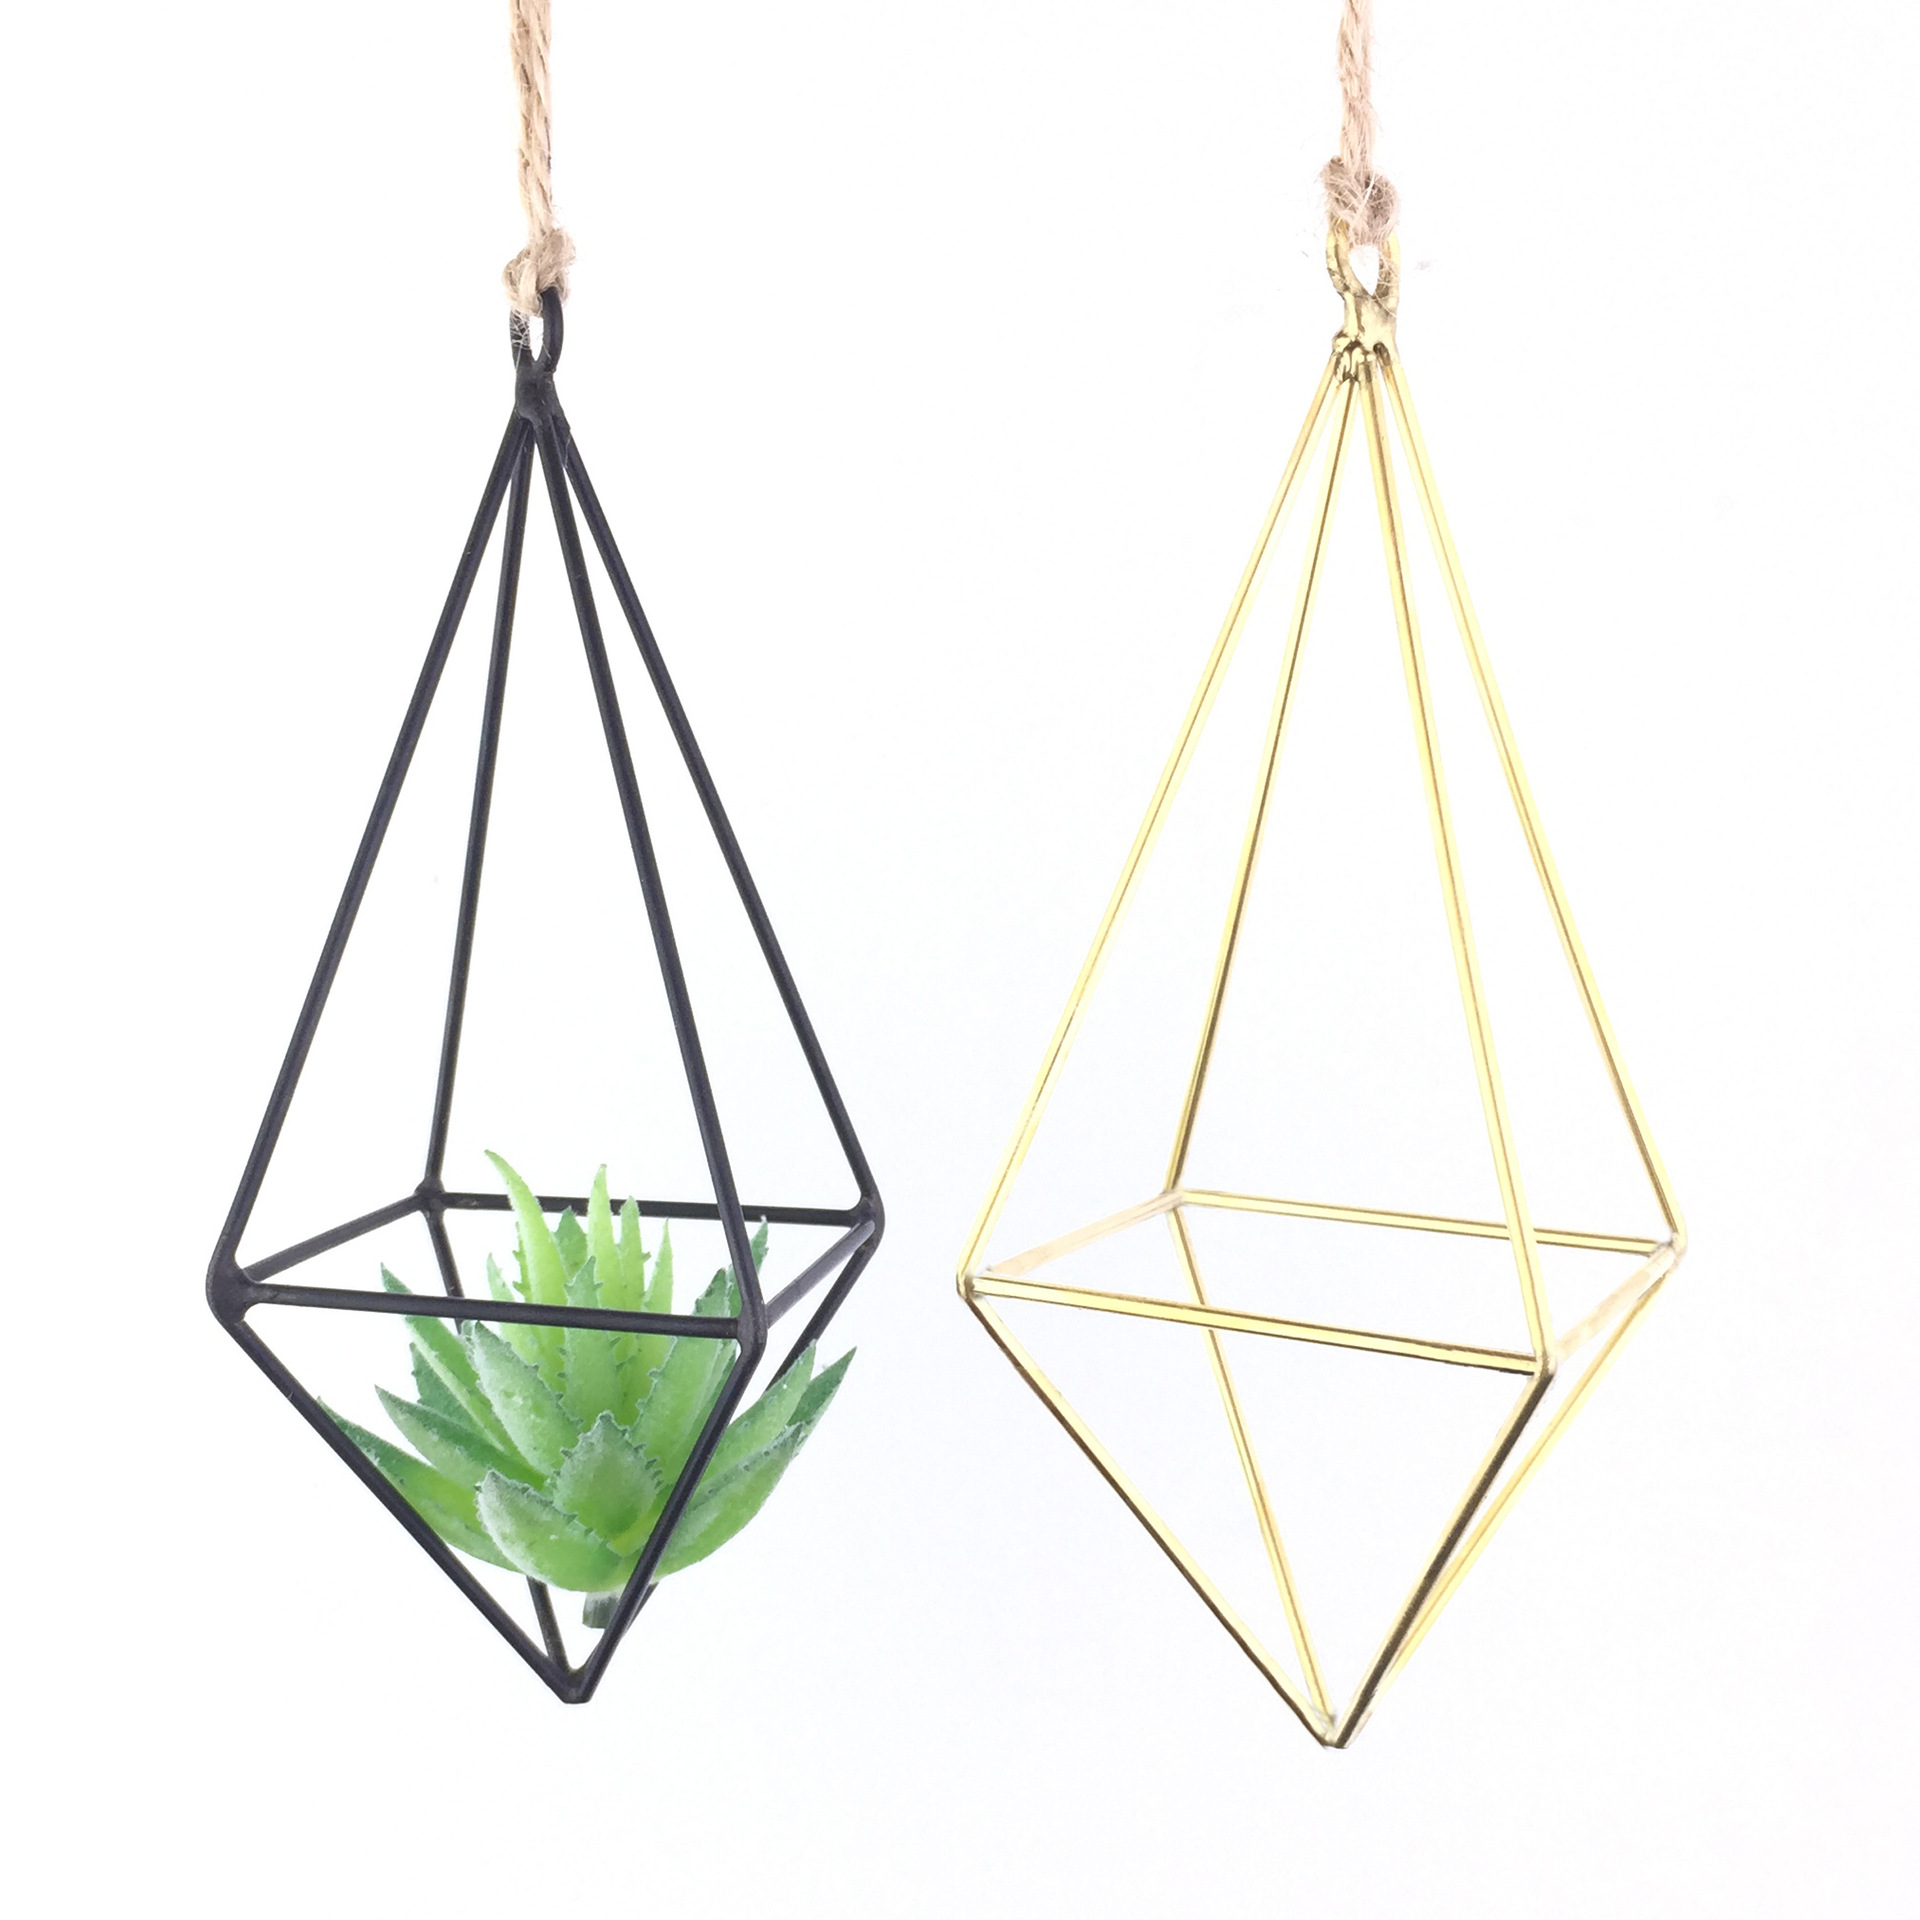 Geometric Diamond Wrought Hanging Iron Frame for Air Plants